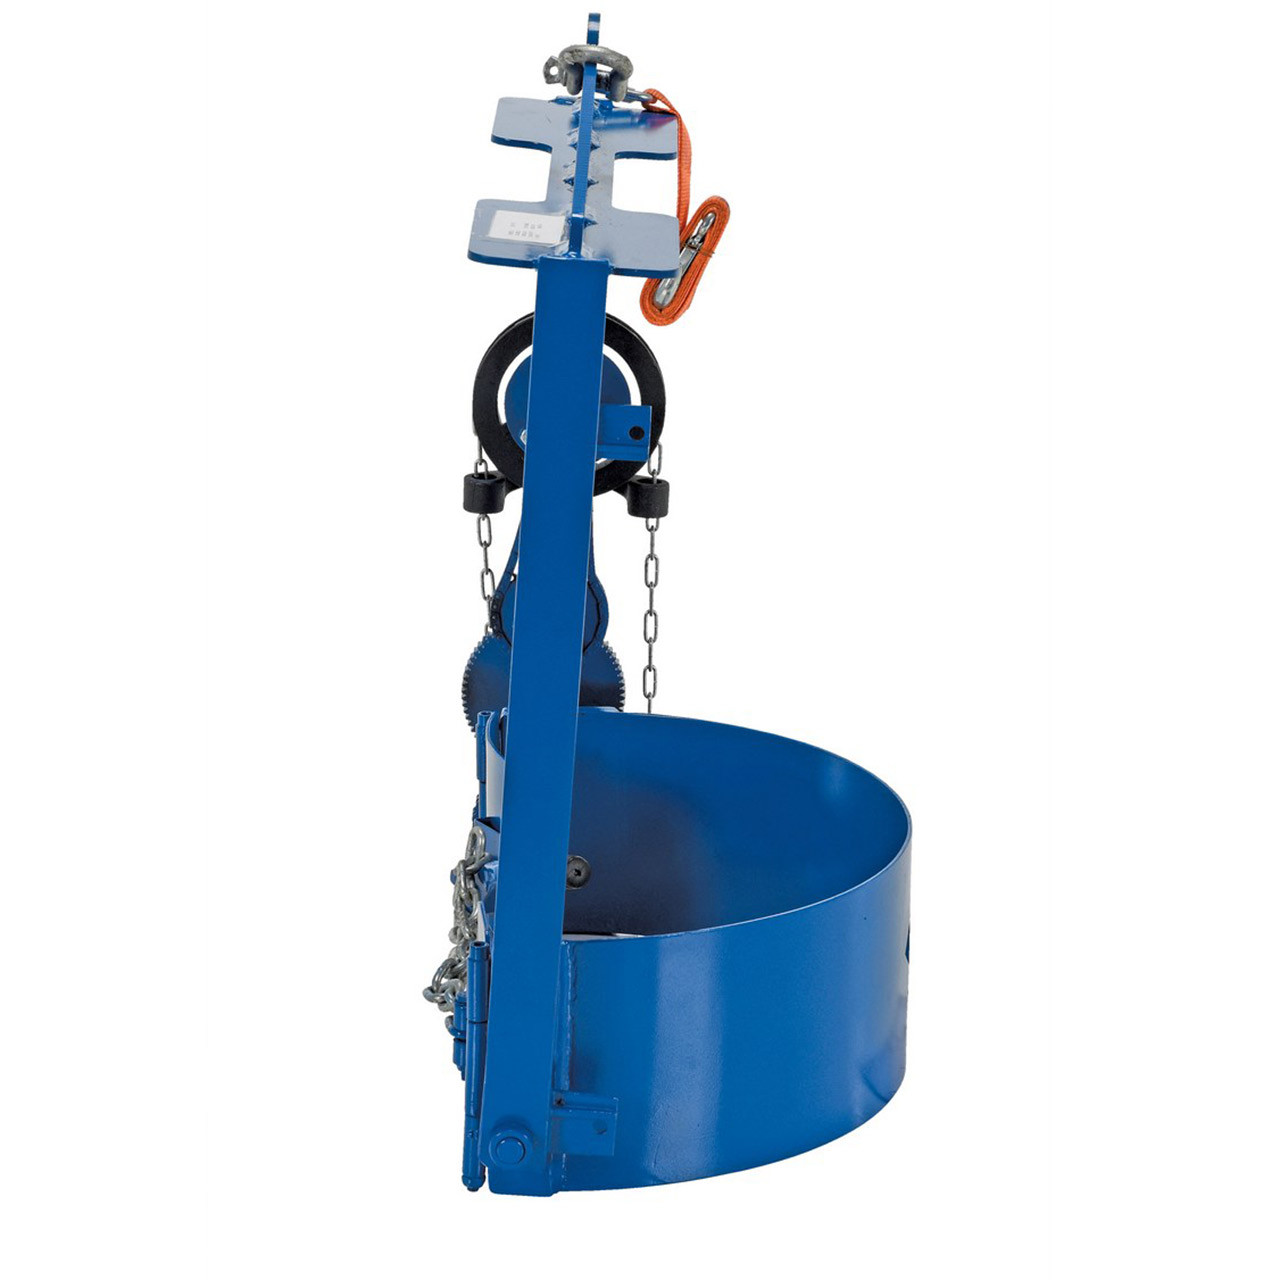 Hoist Mounted Drum Carriers/Rotator Side View